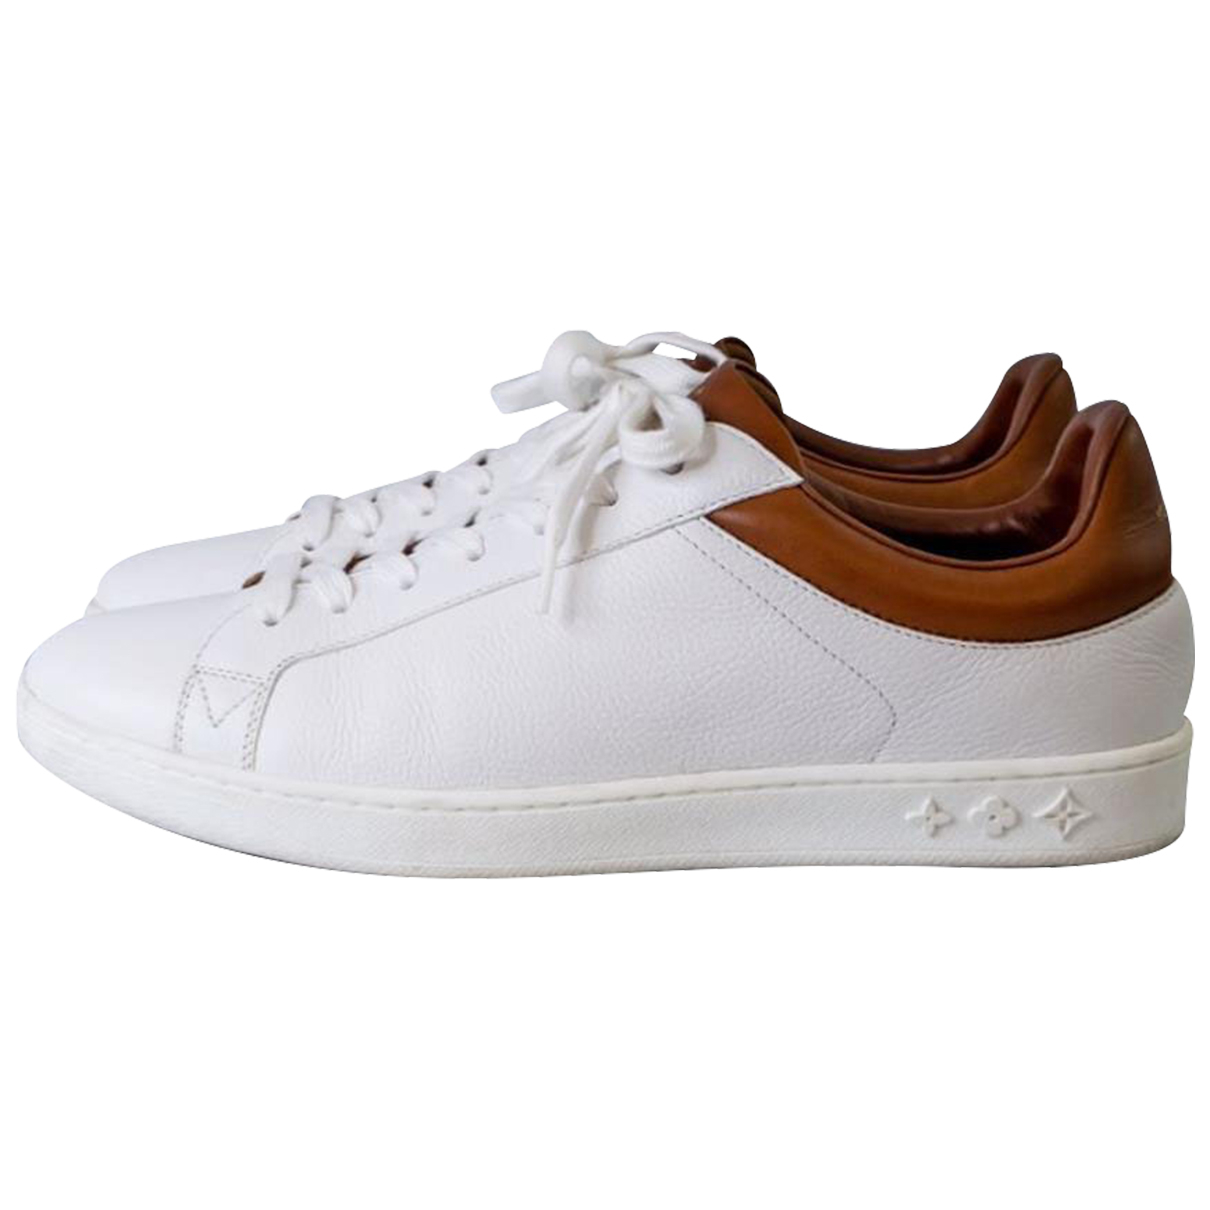 Louis Vuitton N White Leather Trainers for Women 6 US